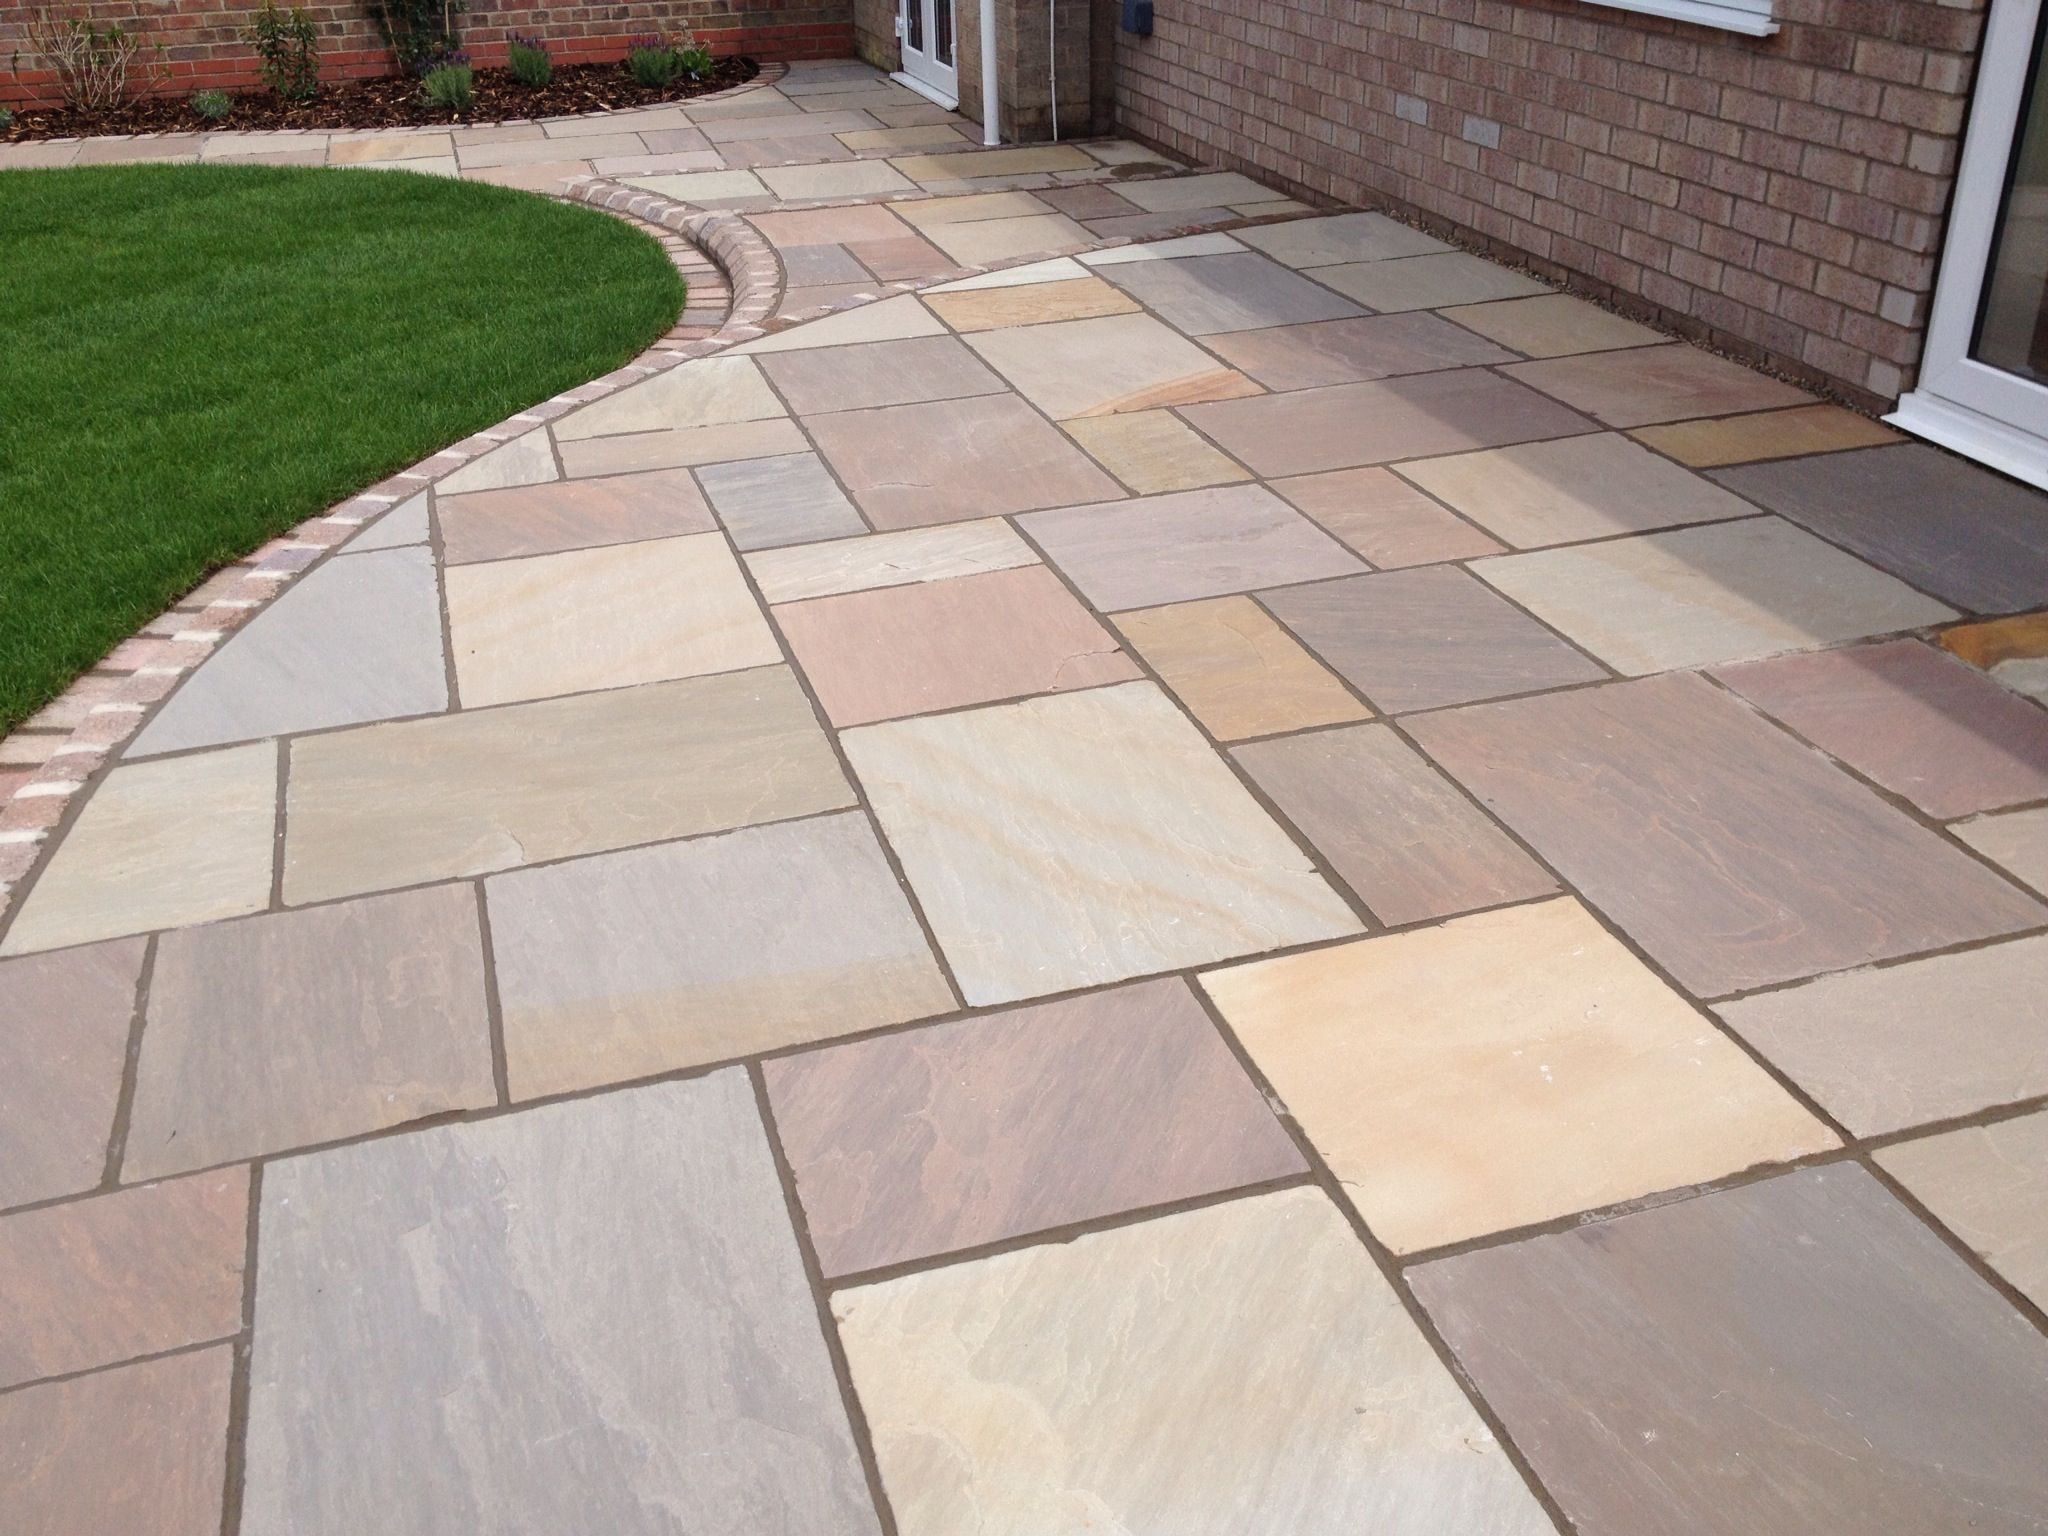 Indian sandstone with marshalls tegula setts and kerbs for Garden decking and slabs